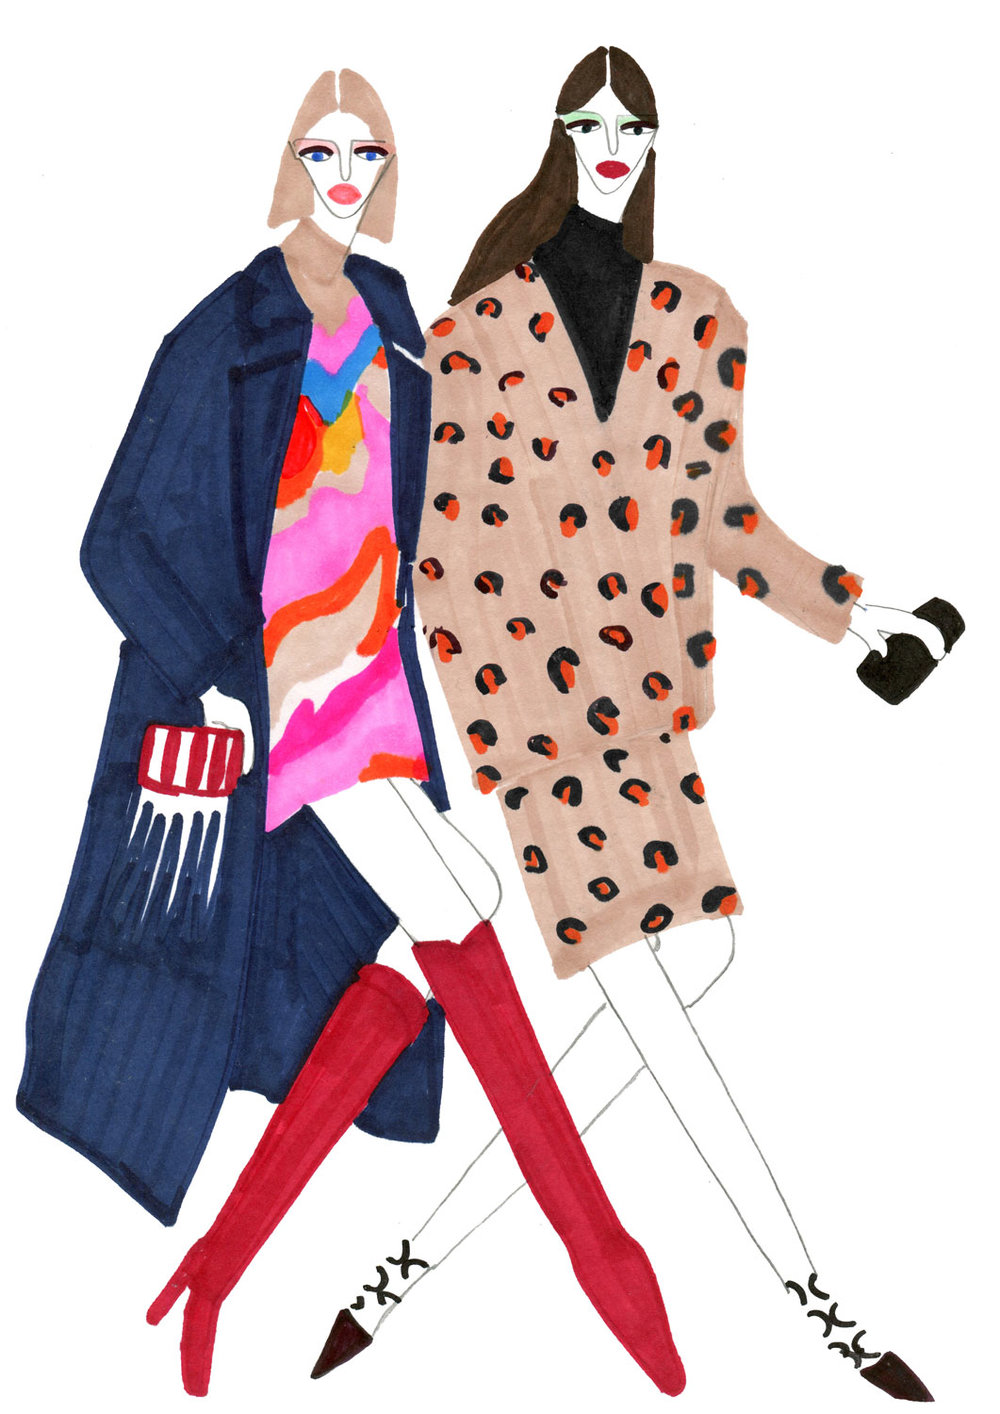 Figurative illustration of Models in long coat